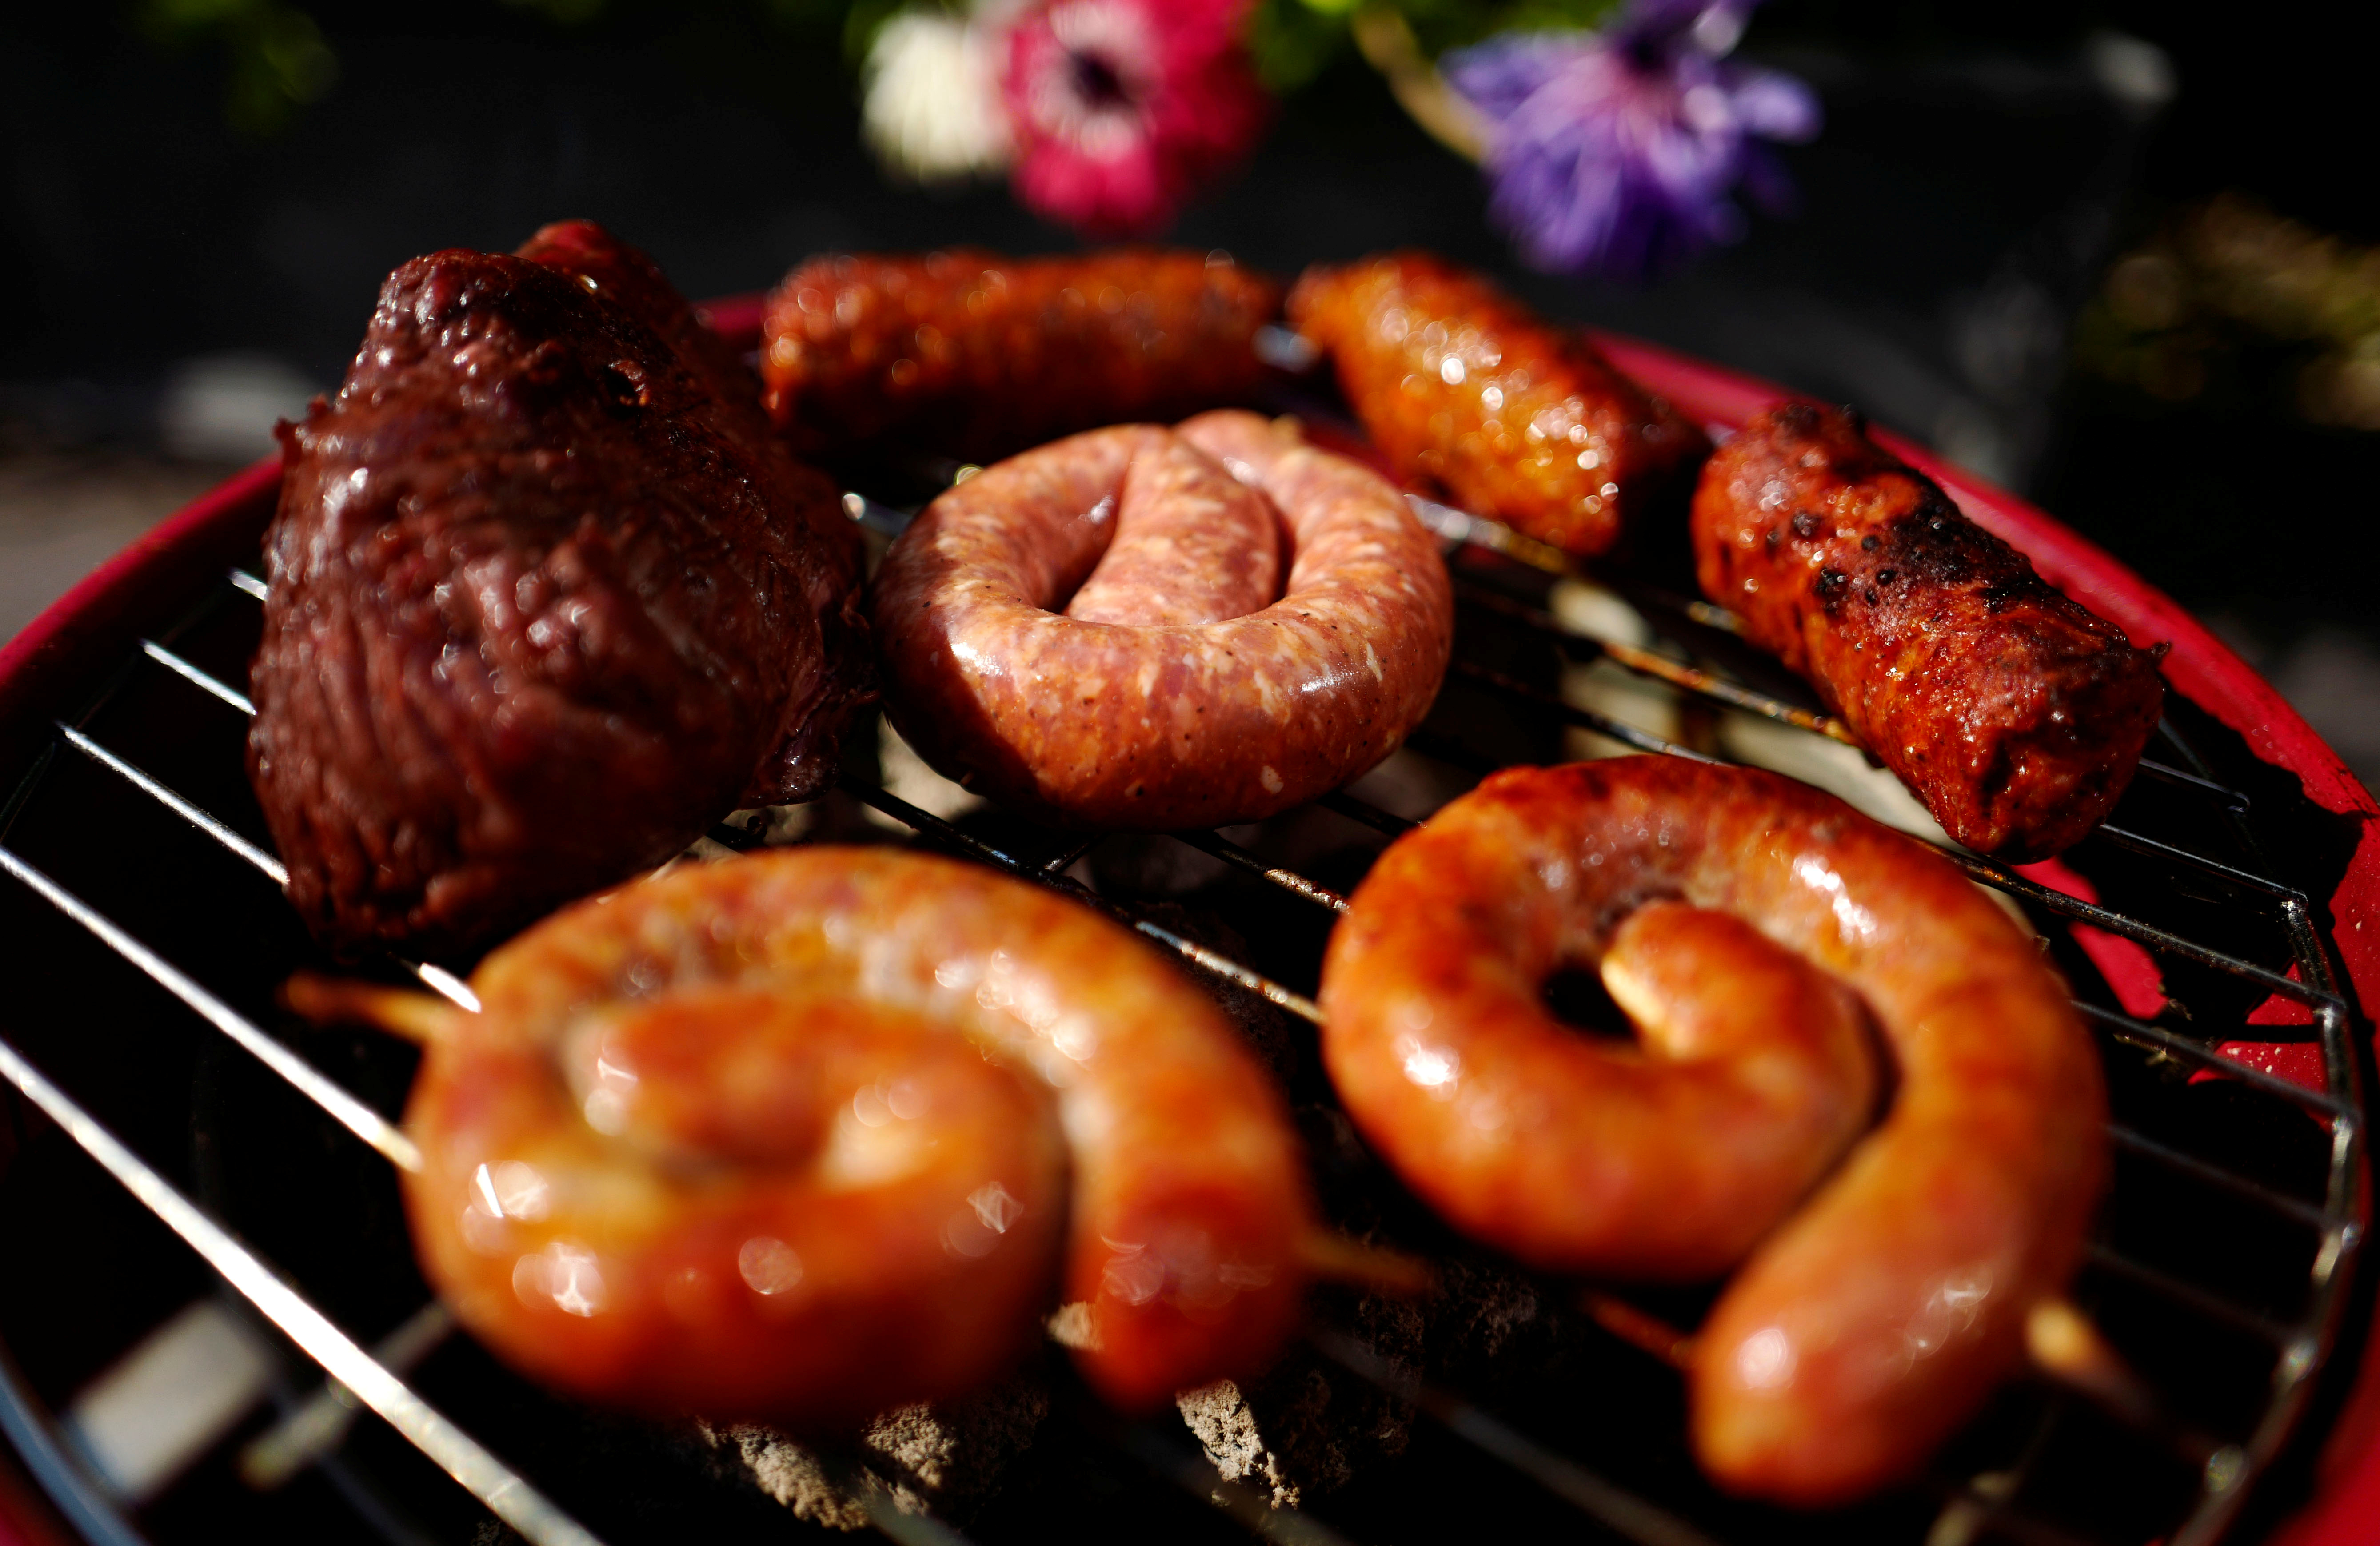 Sausages and meat grill on a charcoal barbecue in a garden in Hanau near Frankfurt, Germany, June 7, 2016.